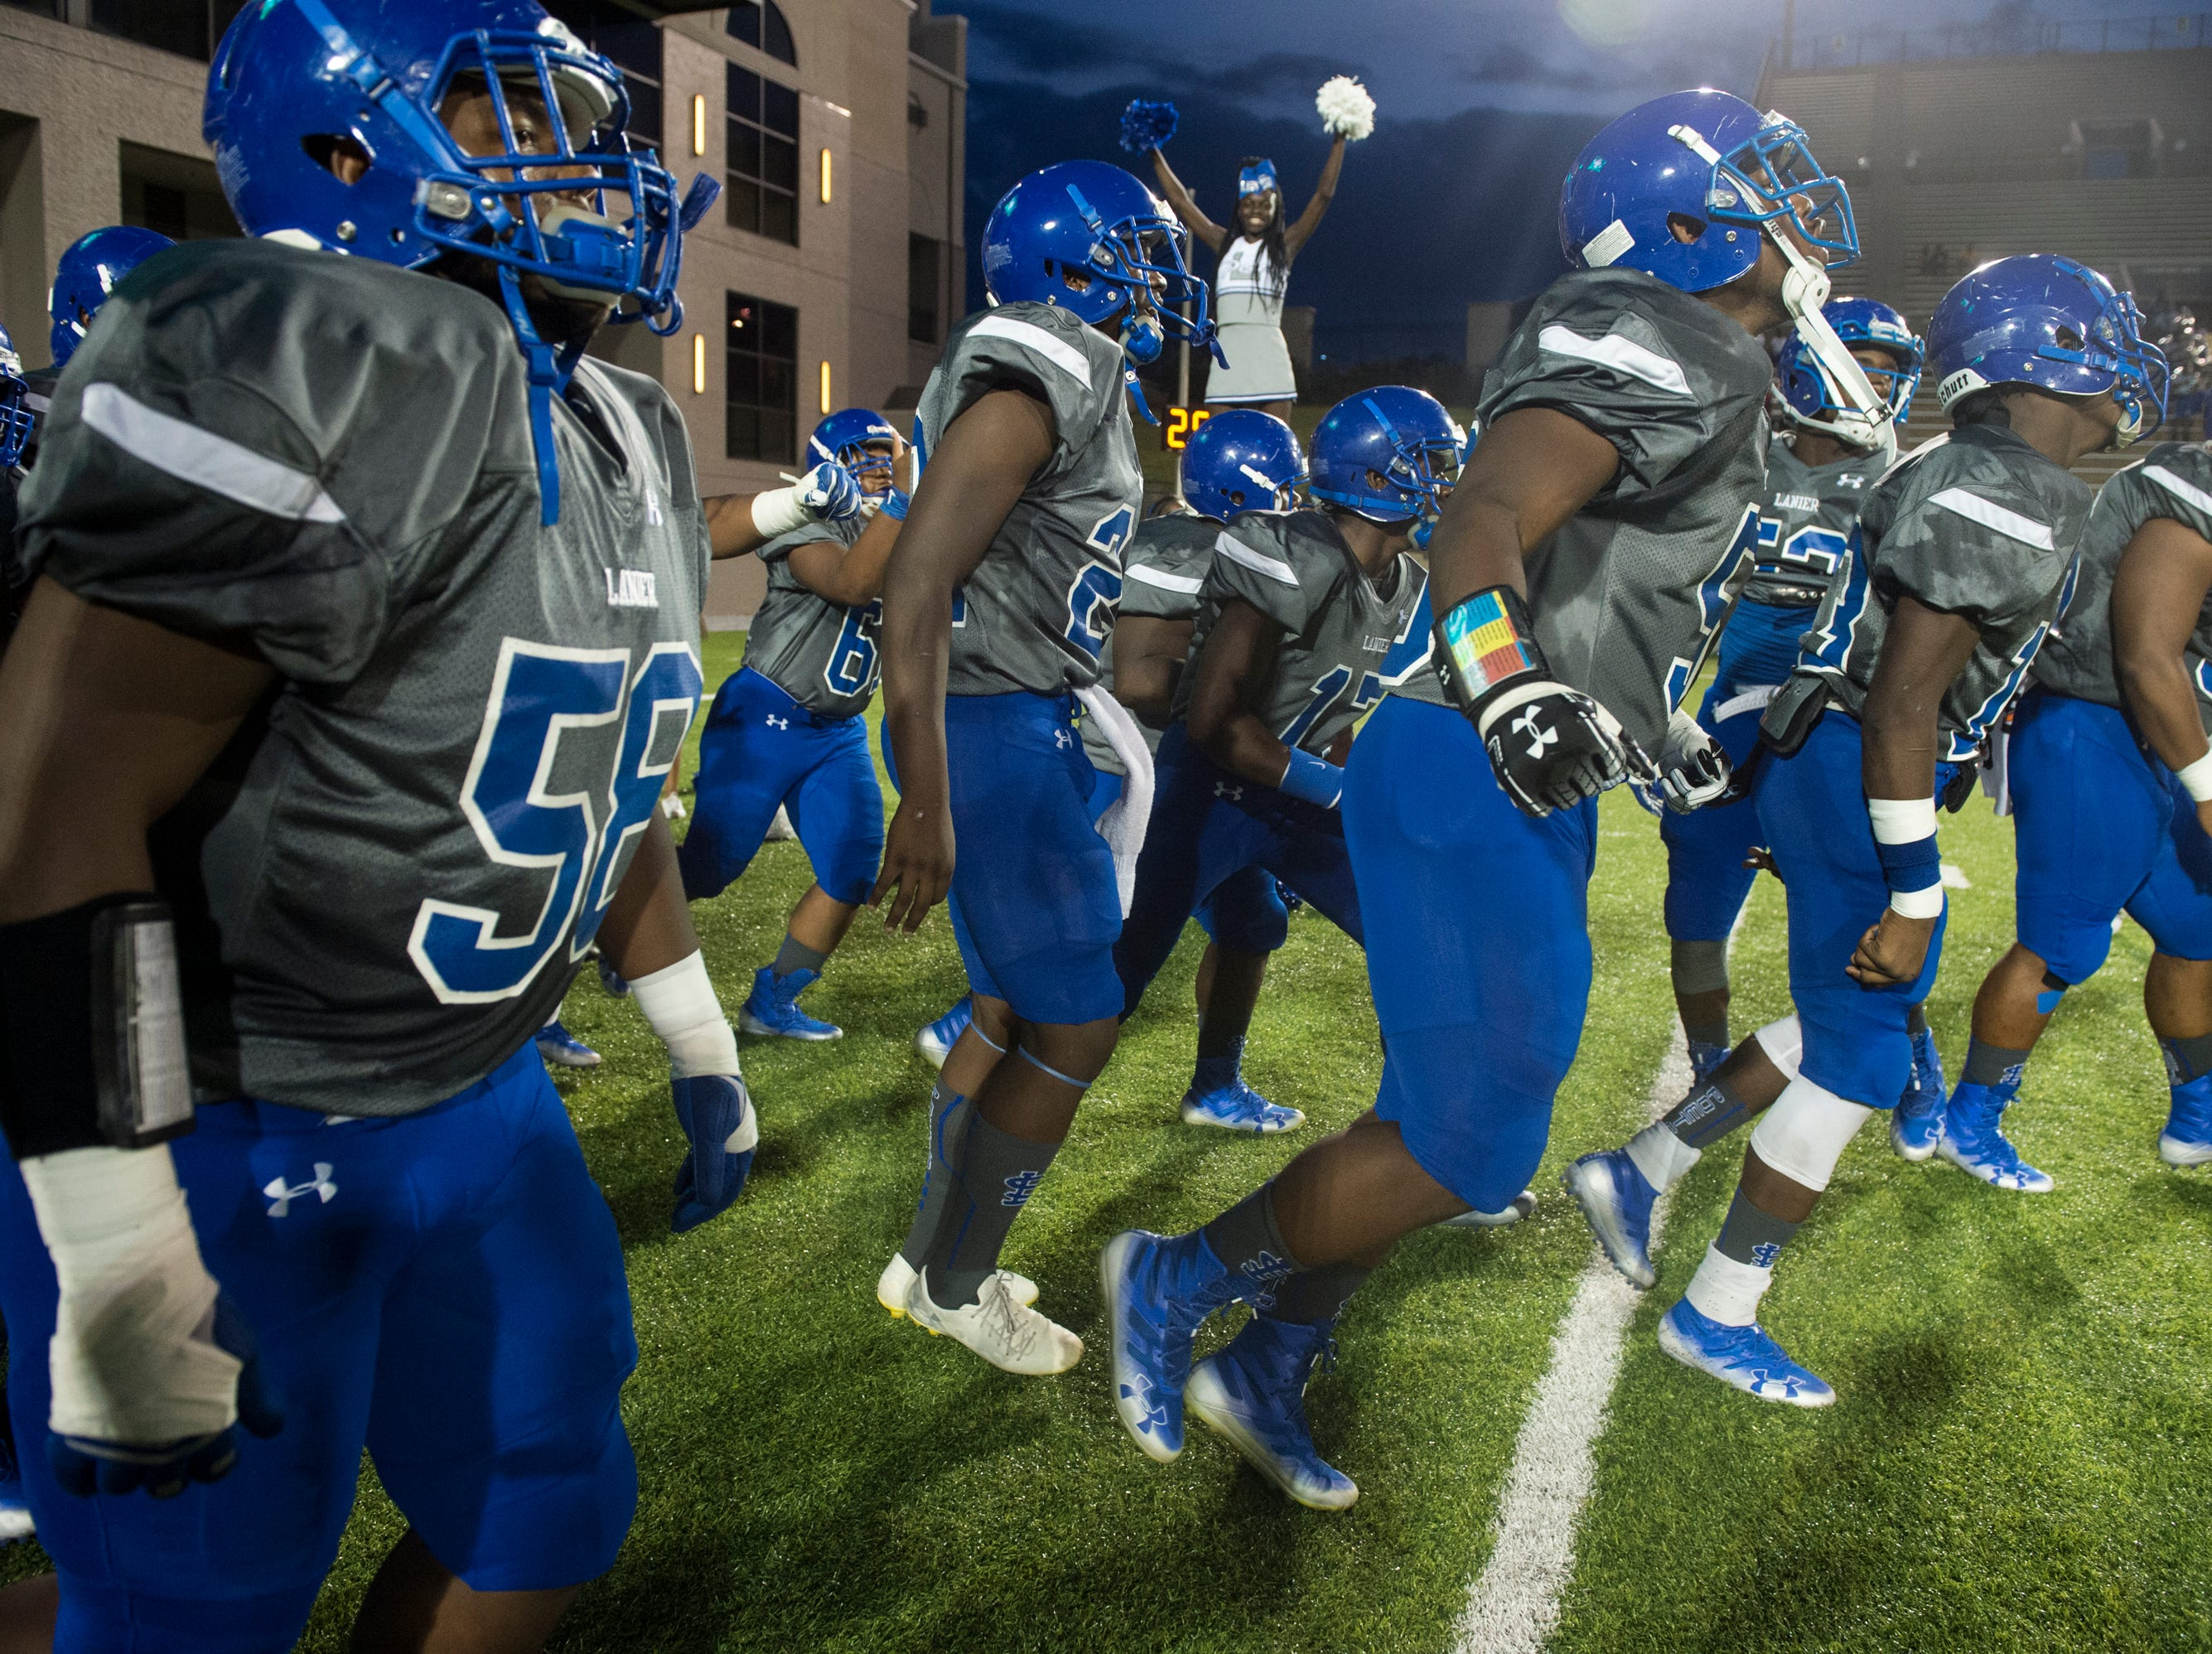 Lanier players take the field as they are introduced at Cramton Bowl in Montgomery, Ala., on Friday, Sept. 21, 2018. Lanier leads Park Crossing 14-7 at halftime.